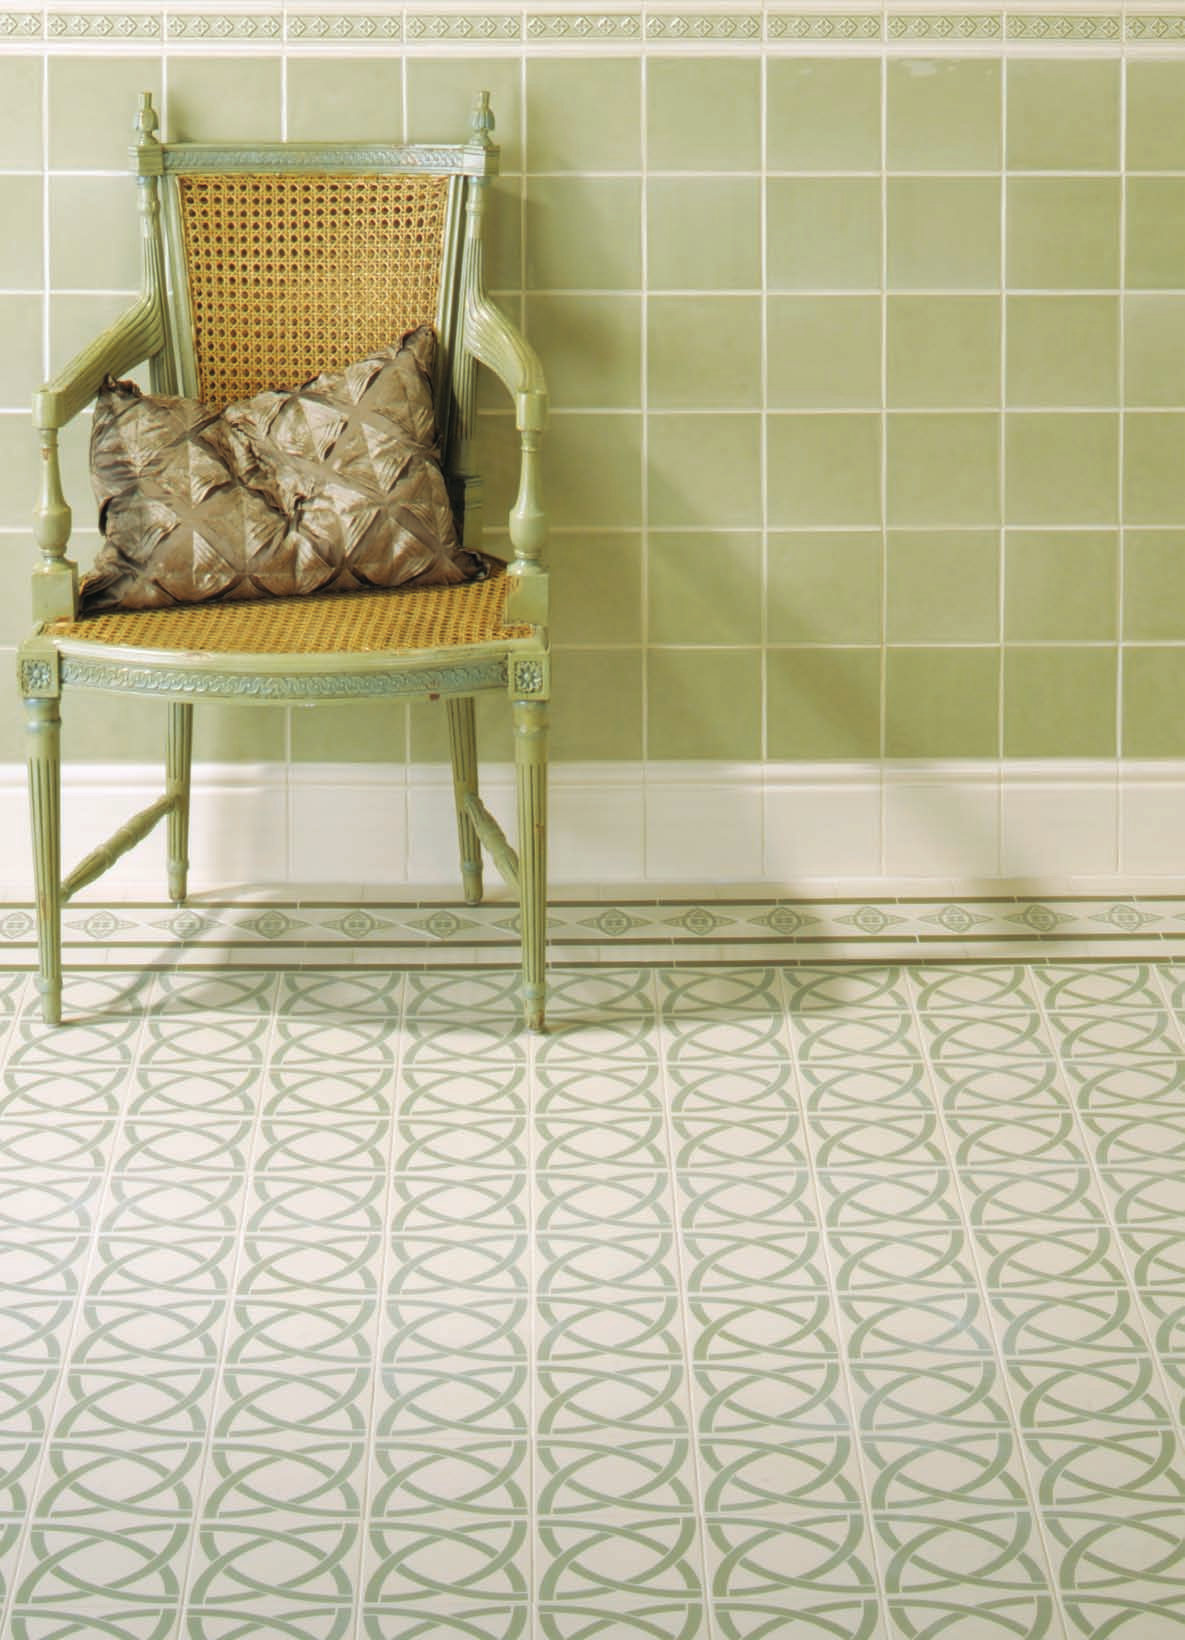 Victorian floor tiles dublin pattern with galway border in pale victorian floor tiles dublin pattern with galway border in pale green on white dailygadgetfo Images